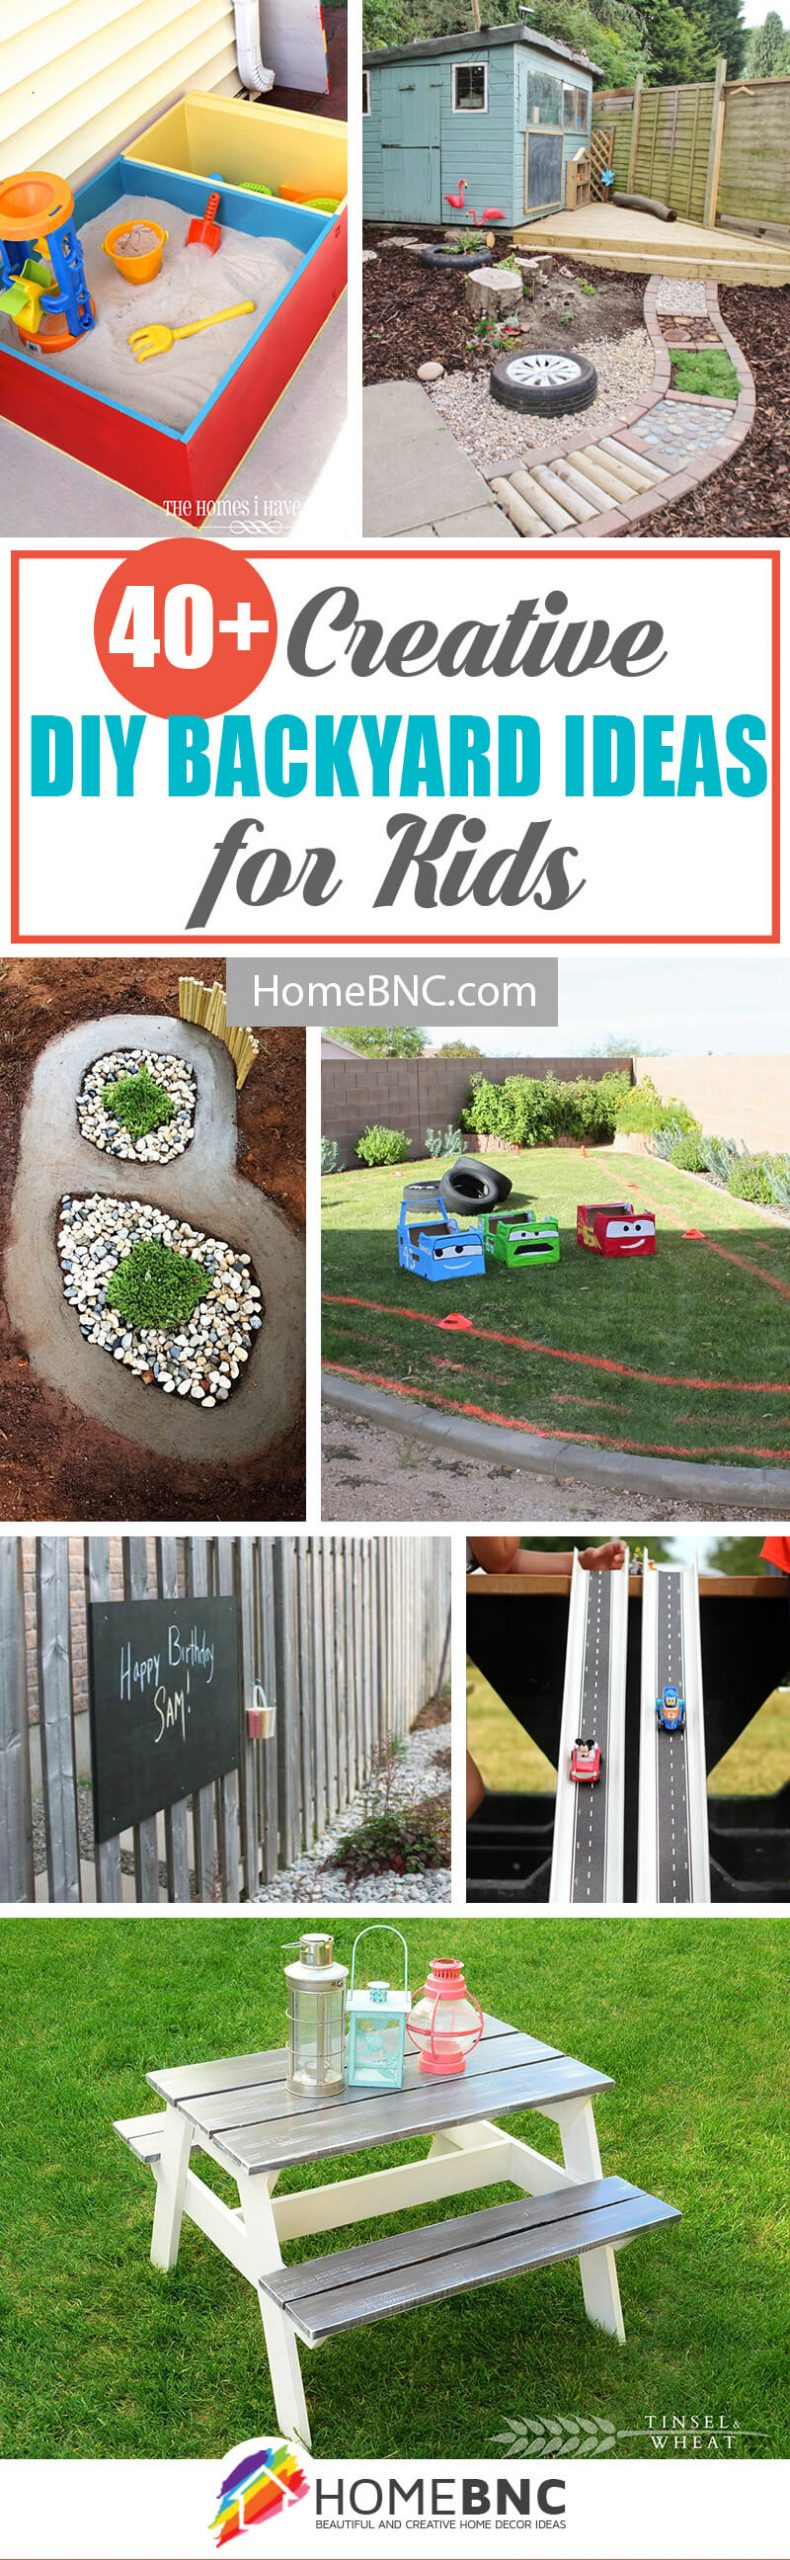 40 Best Diy Backyard Ideas And Designs For Kids In 2021